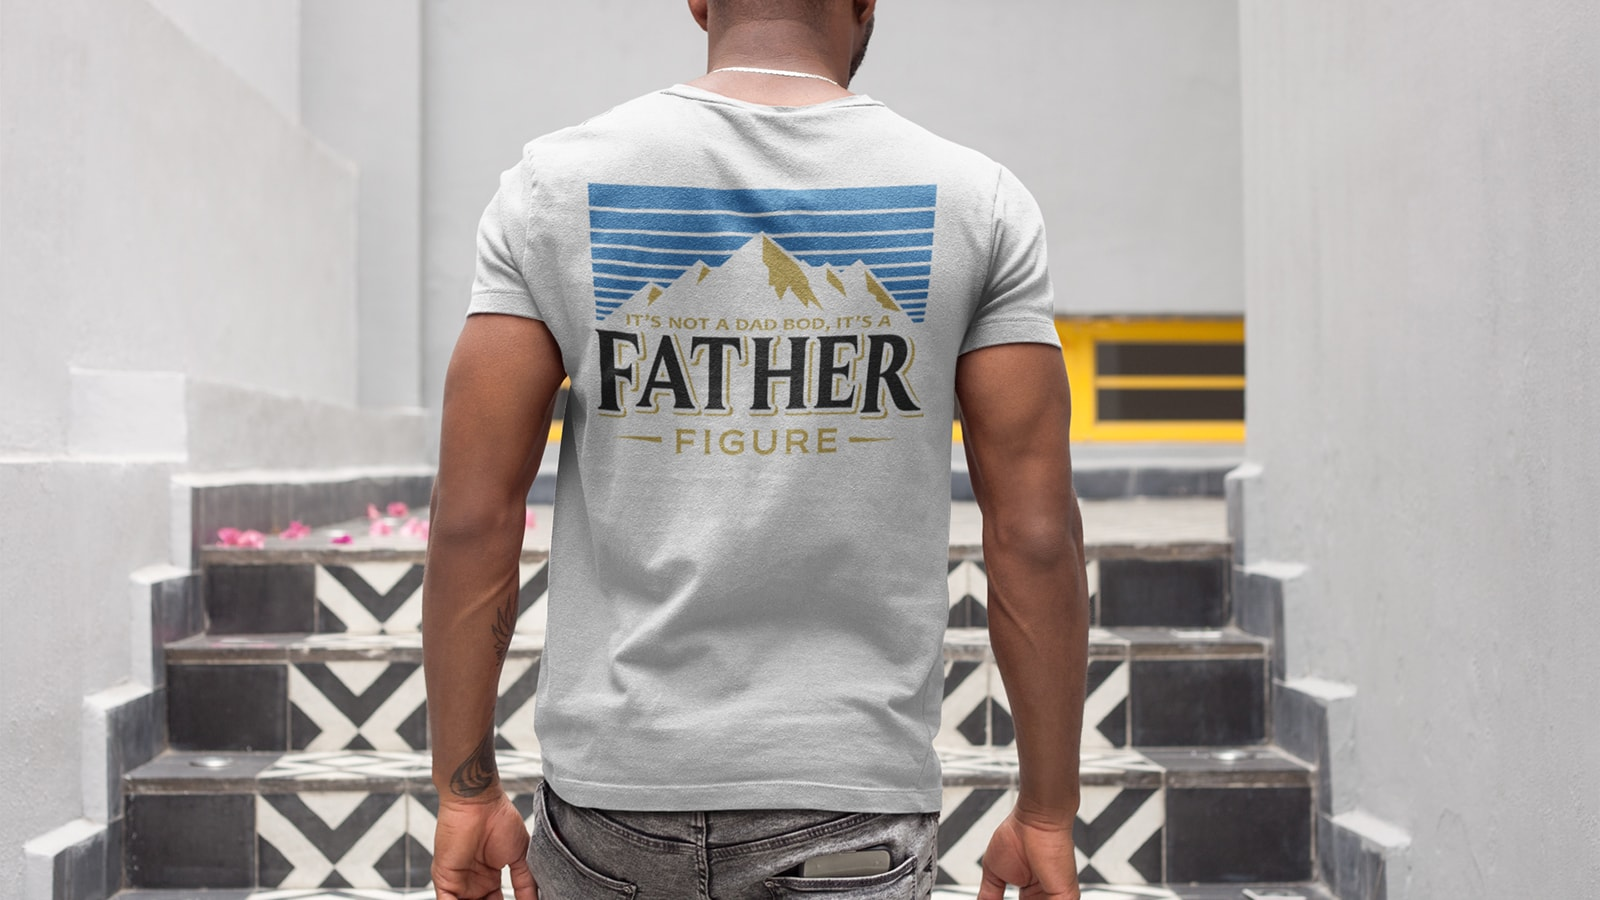 """""""It's Not a Dad Bod"""" beer lover shirt humorously touts that """"It's a Father Figure"""""""